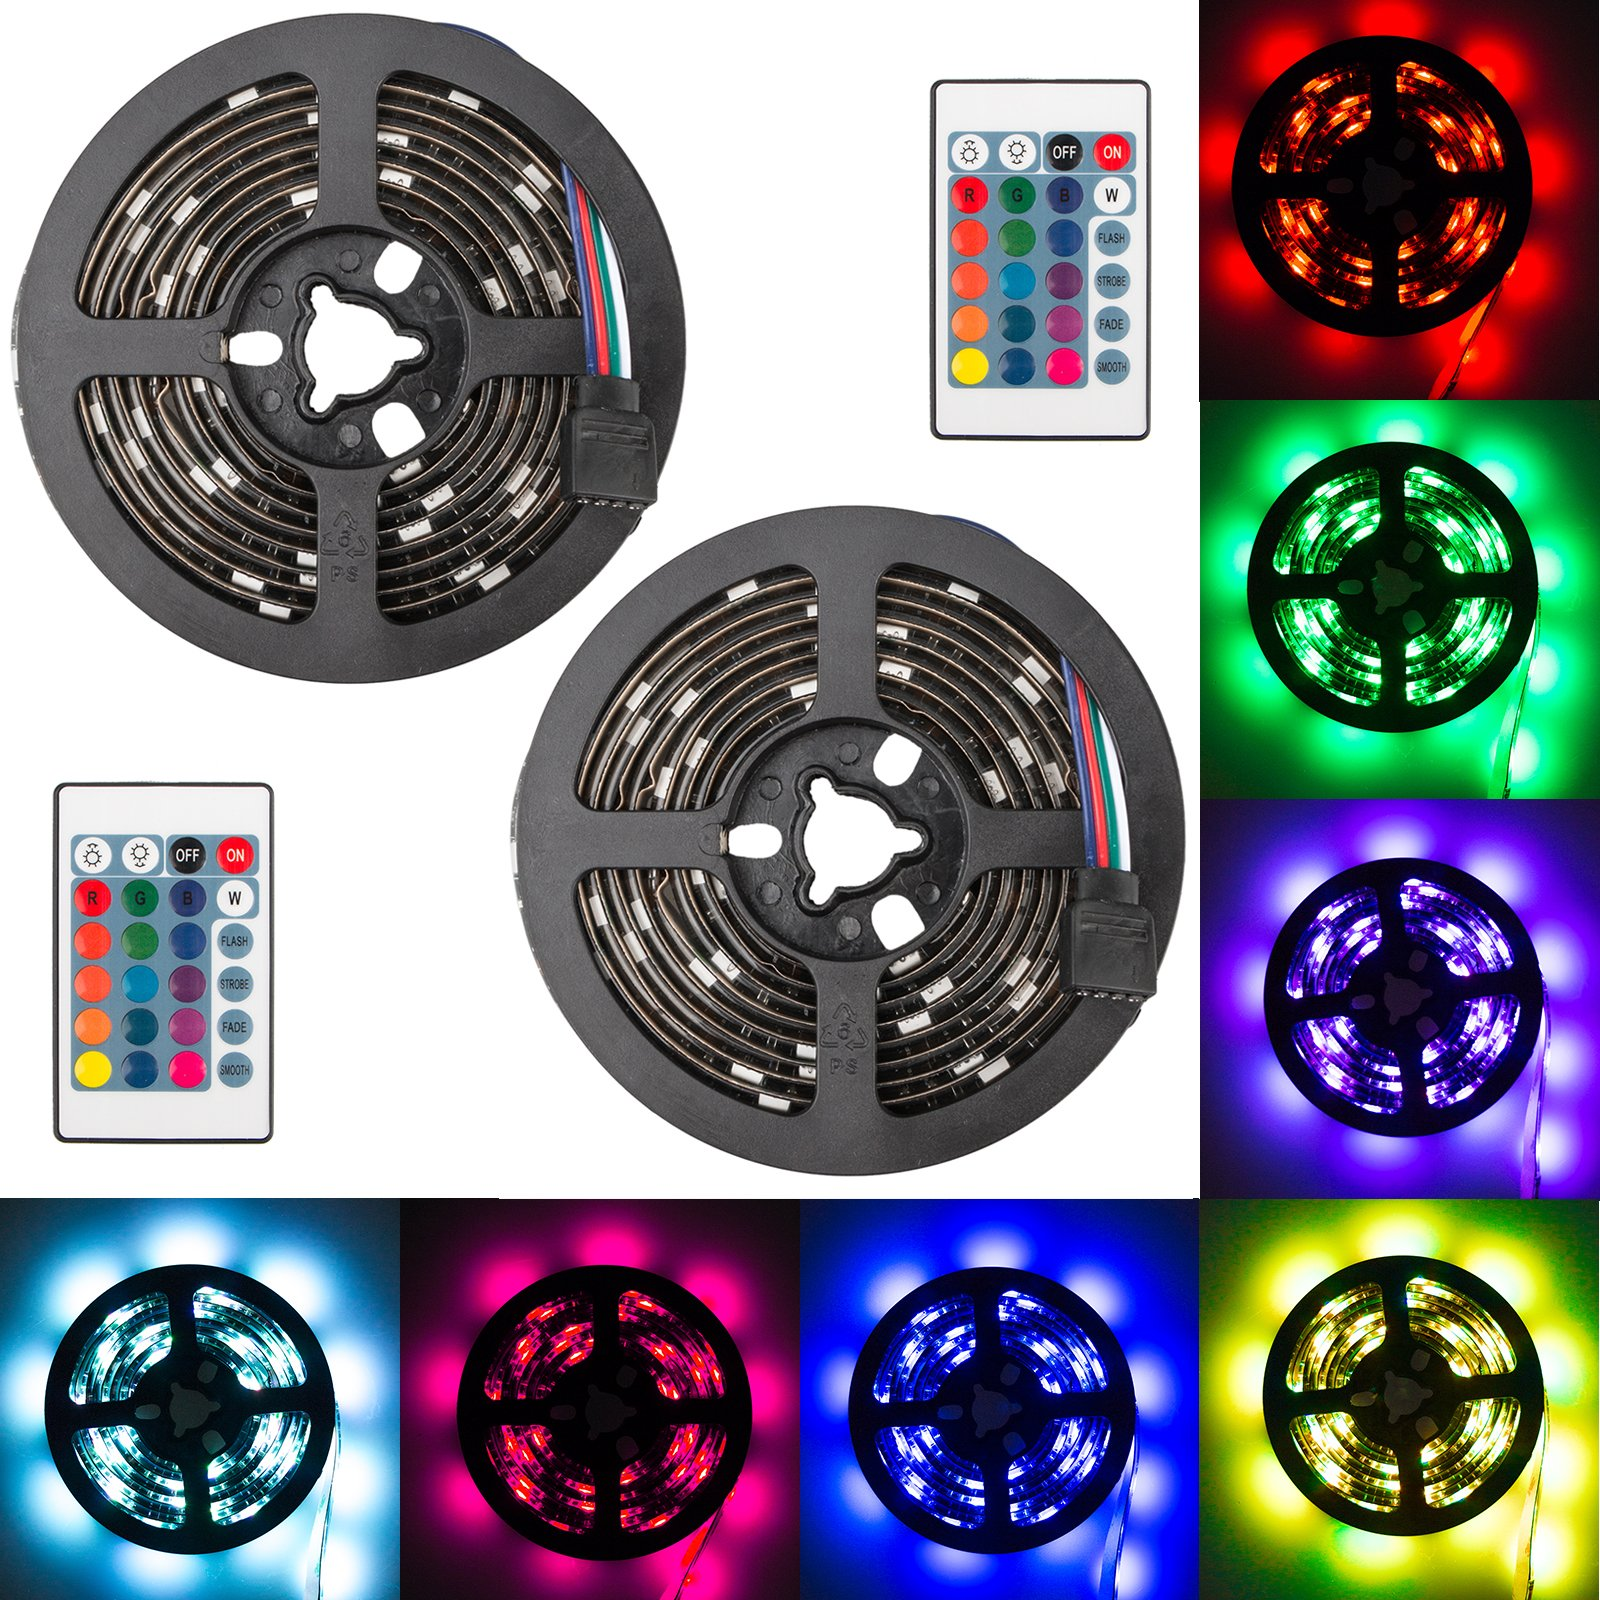 EEEKit 2-pack Super Bright 5050SMD RGB Color Changable LED Light, 6.6ft Battery Powered Strip Lamp Backlight, for Car Bike Party Color Changing